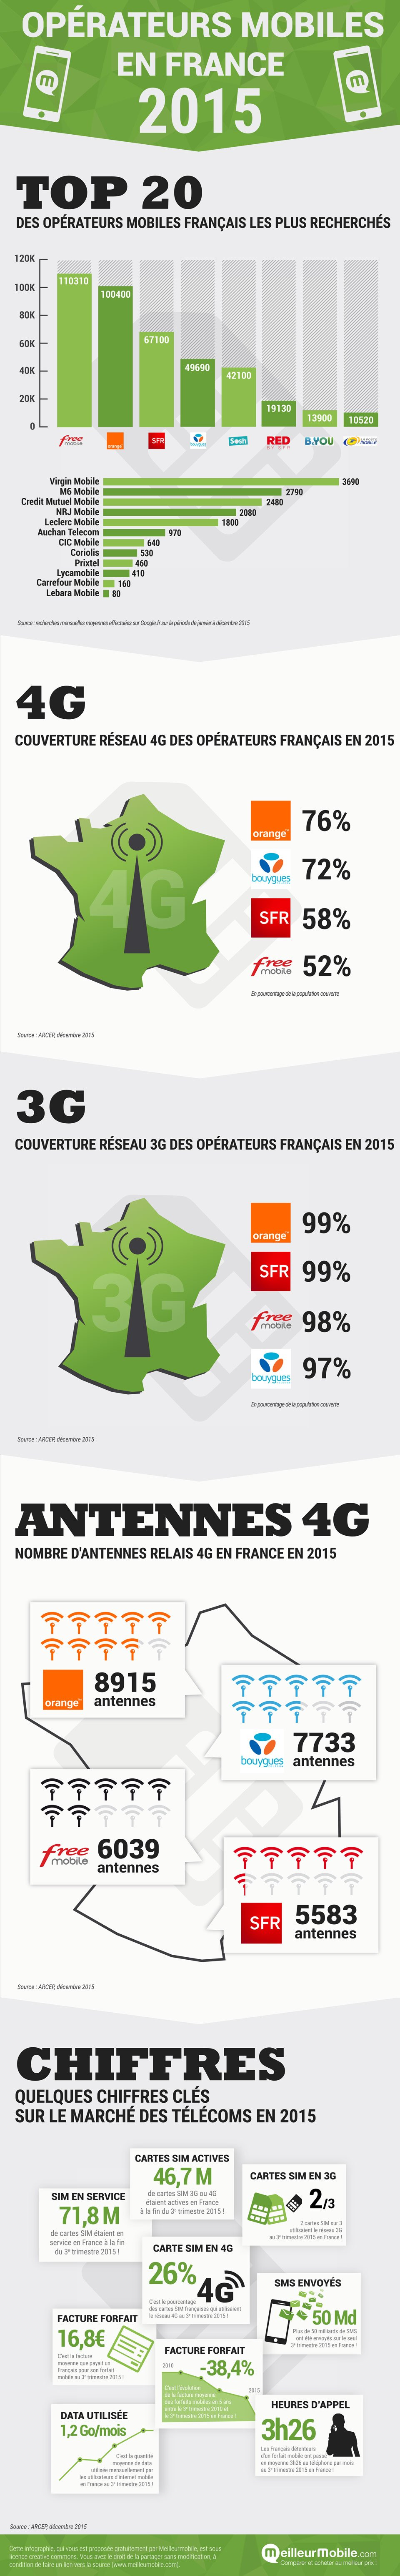 infographie-operateurs-mobiles-france-2015